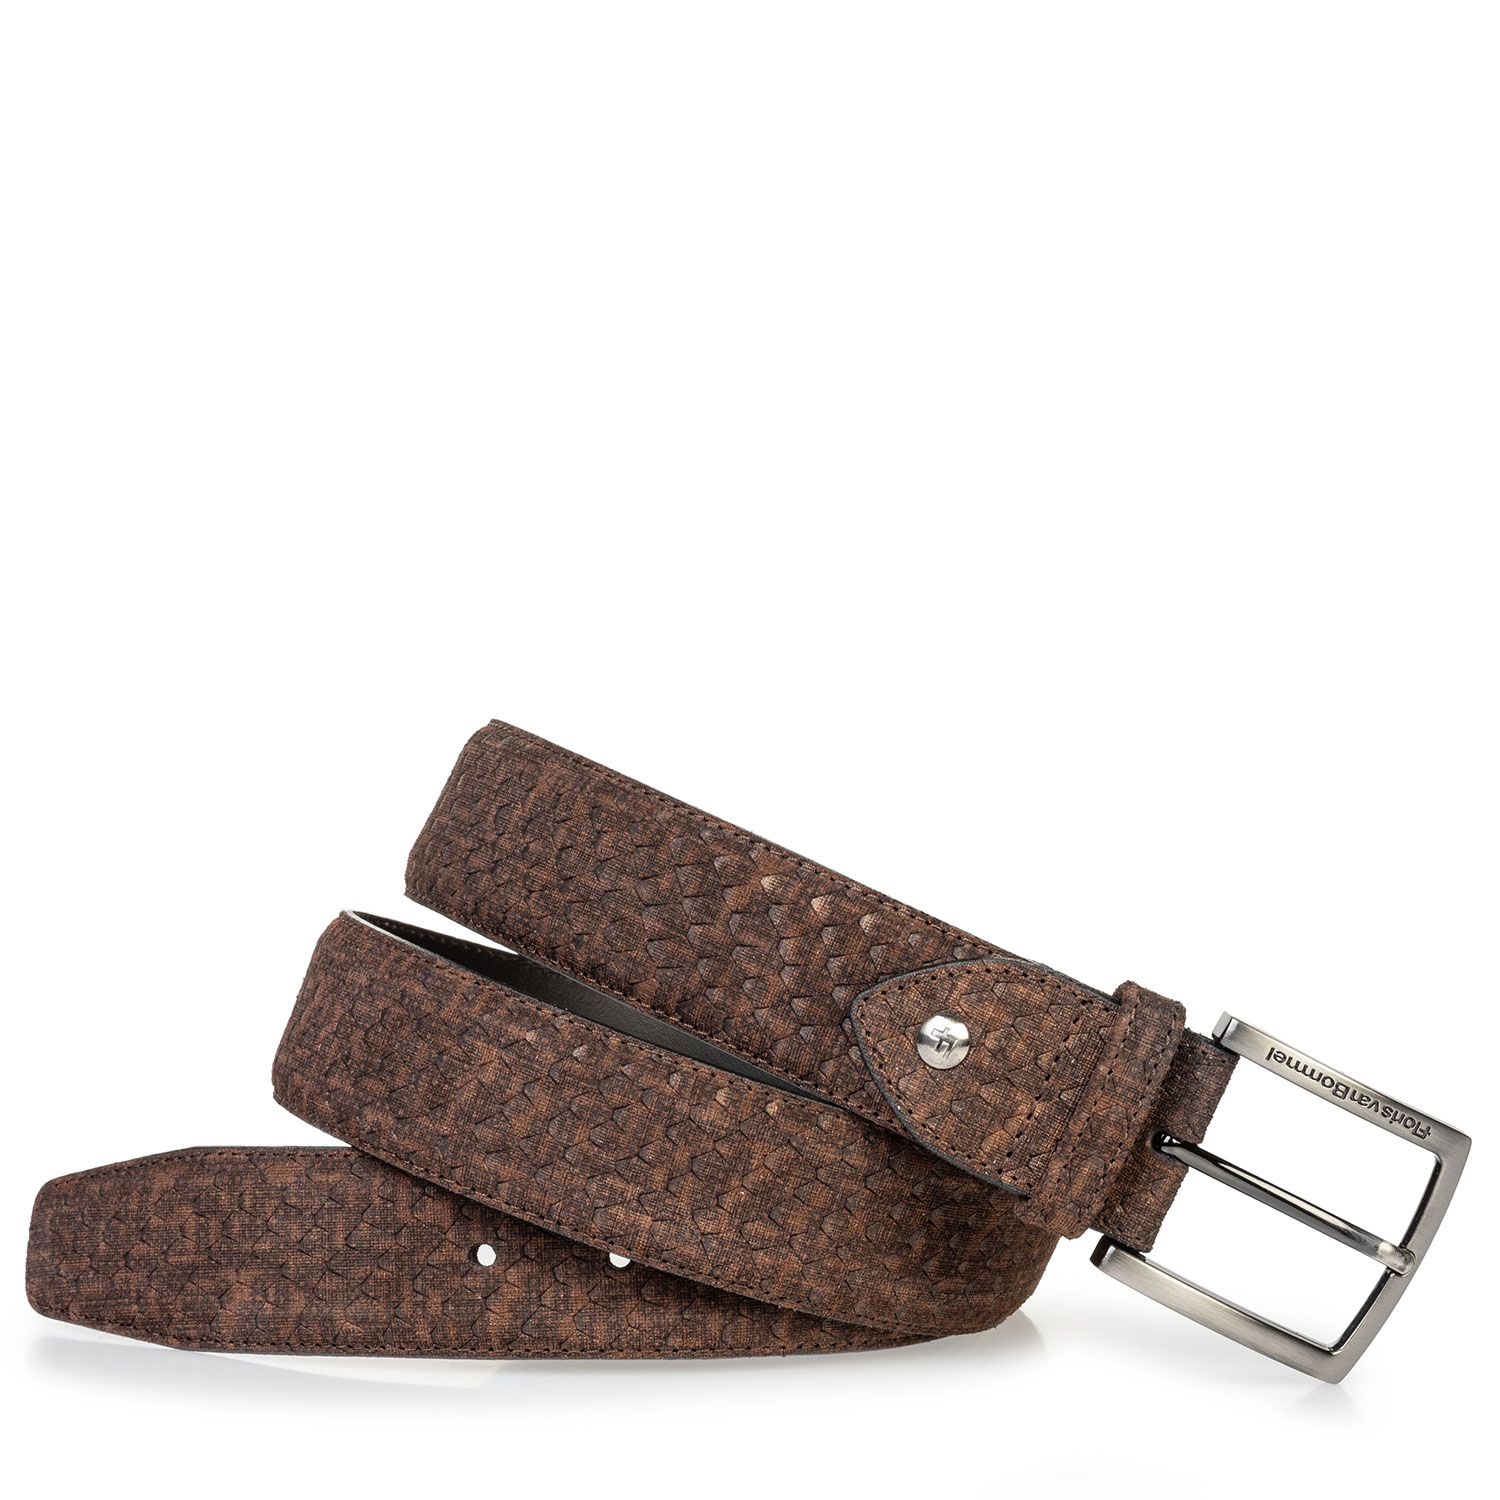 75204/07 - Suede leather belt dark brown with print